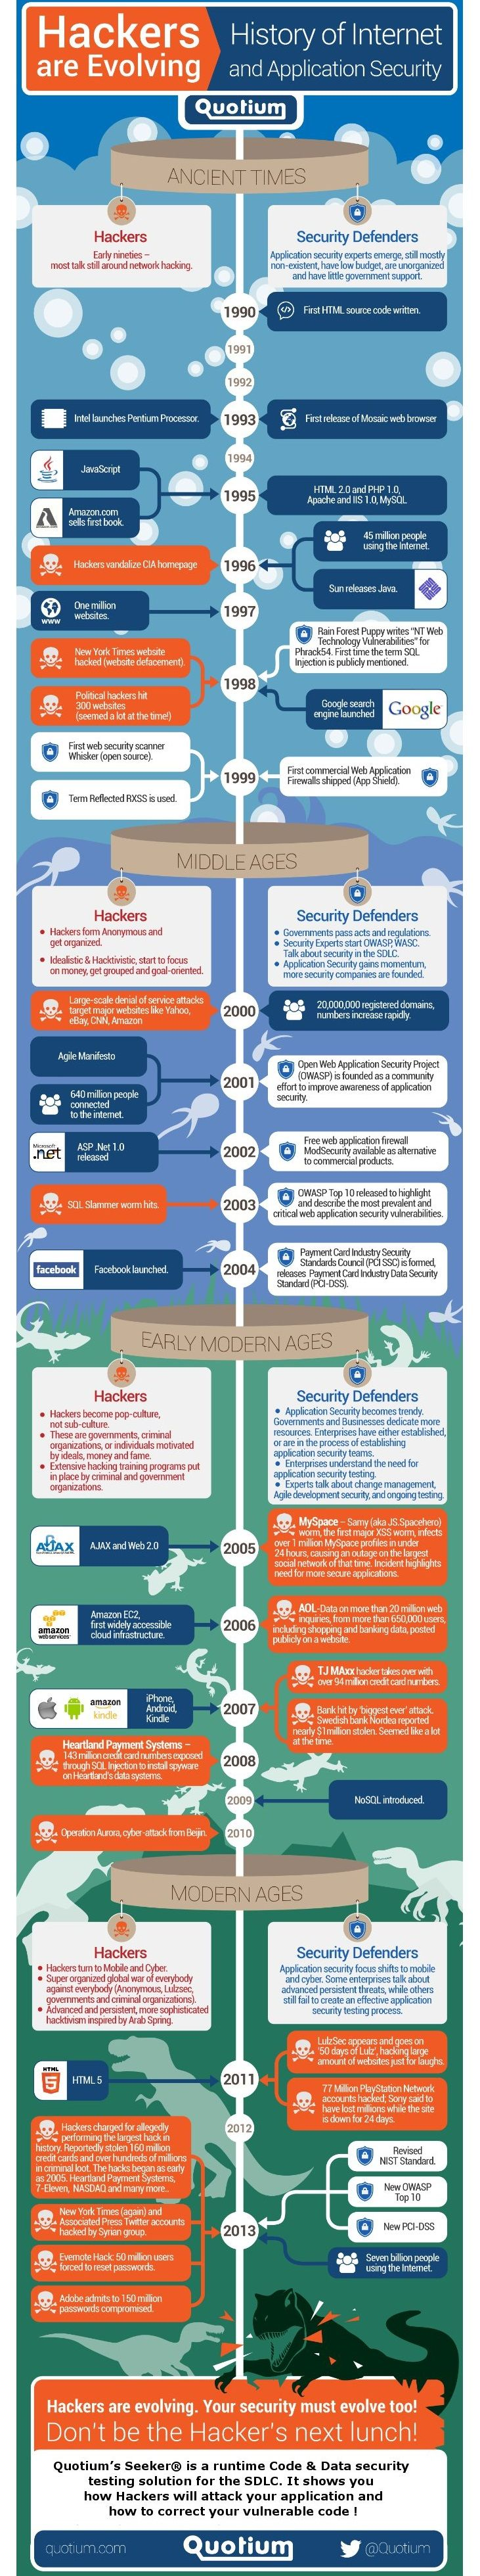 a history and evolution of the internet Let's take a look at a simple history of the internet and recap some of the milestones that got us from there to here with a short internet history timeline.